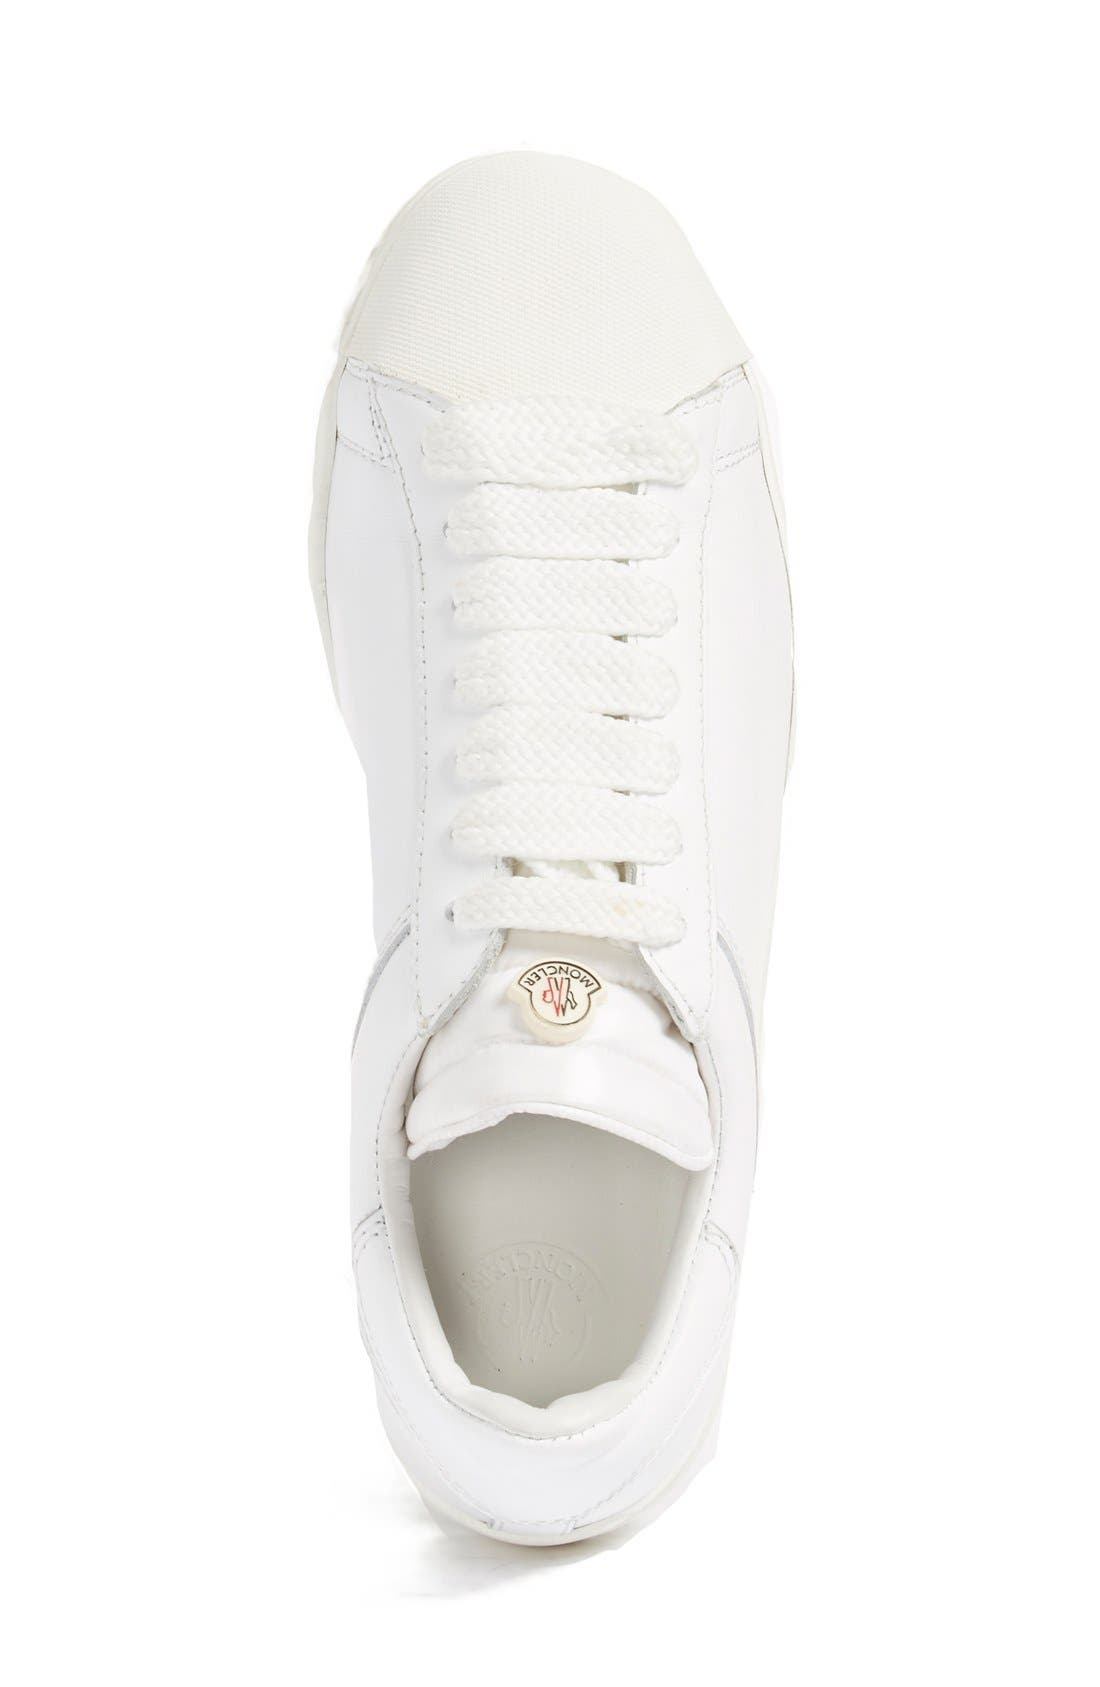 'Angeline Scarpa' Sneaker,                             Alternate thumbnail 4, color,                             White Leather